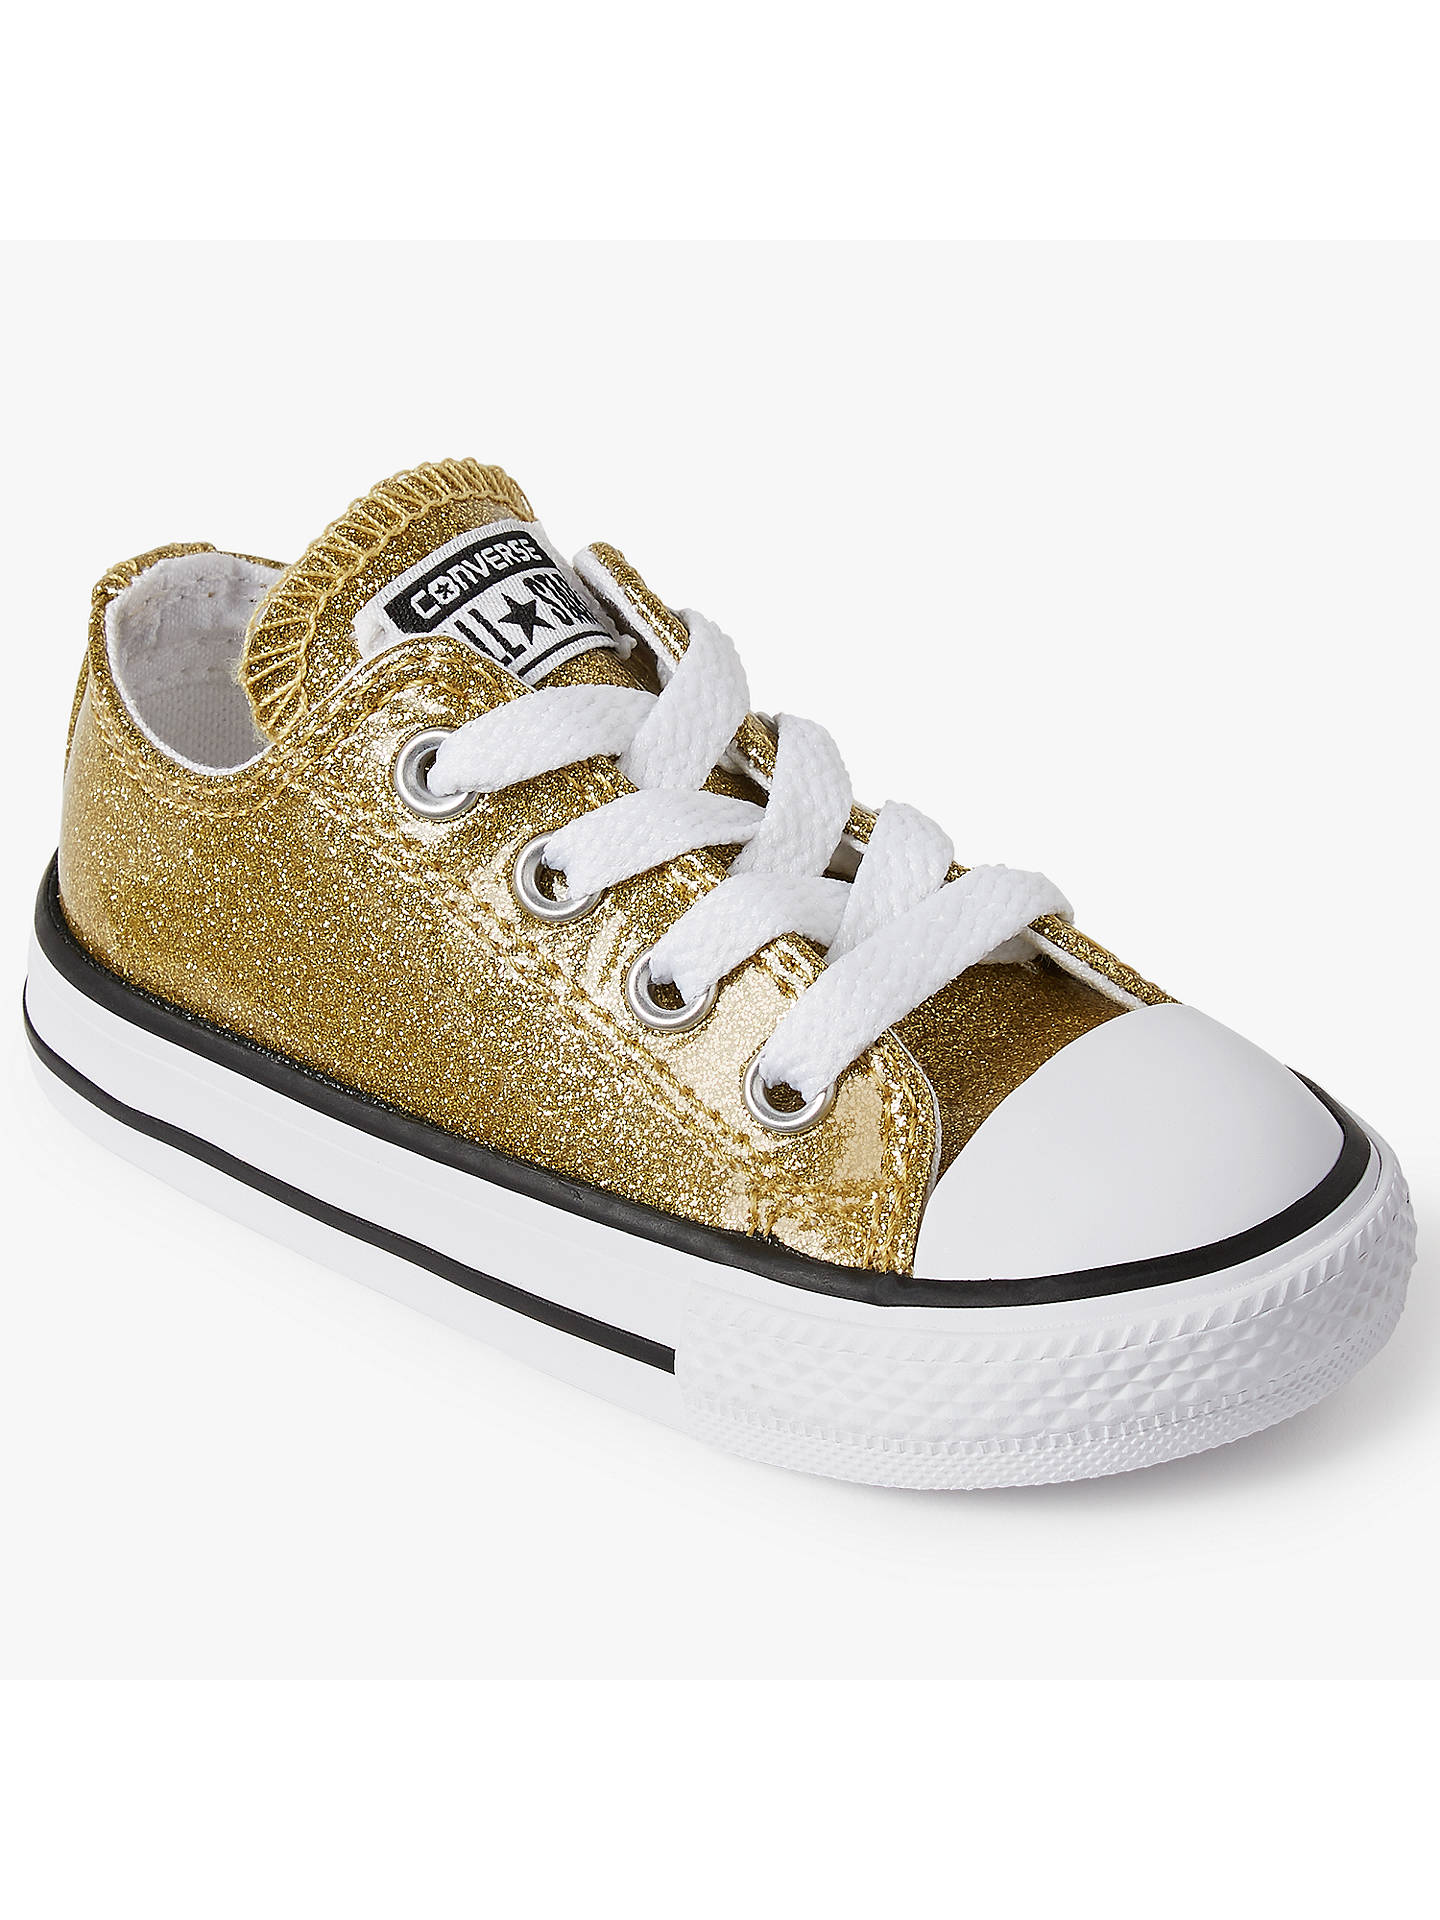 652d124f550cd0 Buy Converse Children s Chuck Taylor All Star Trainers